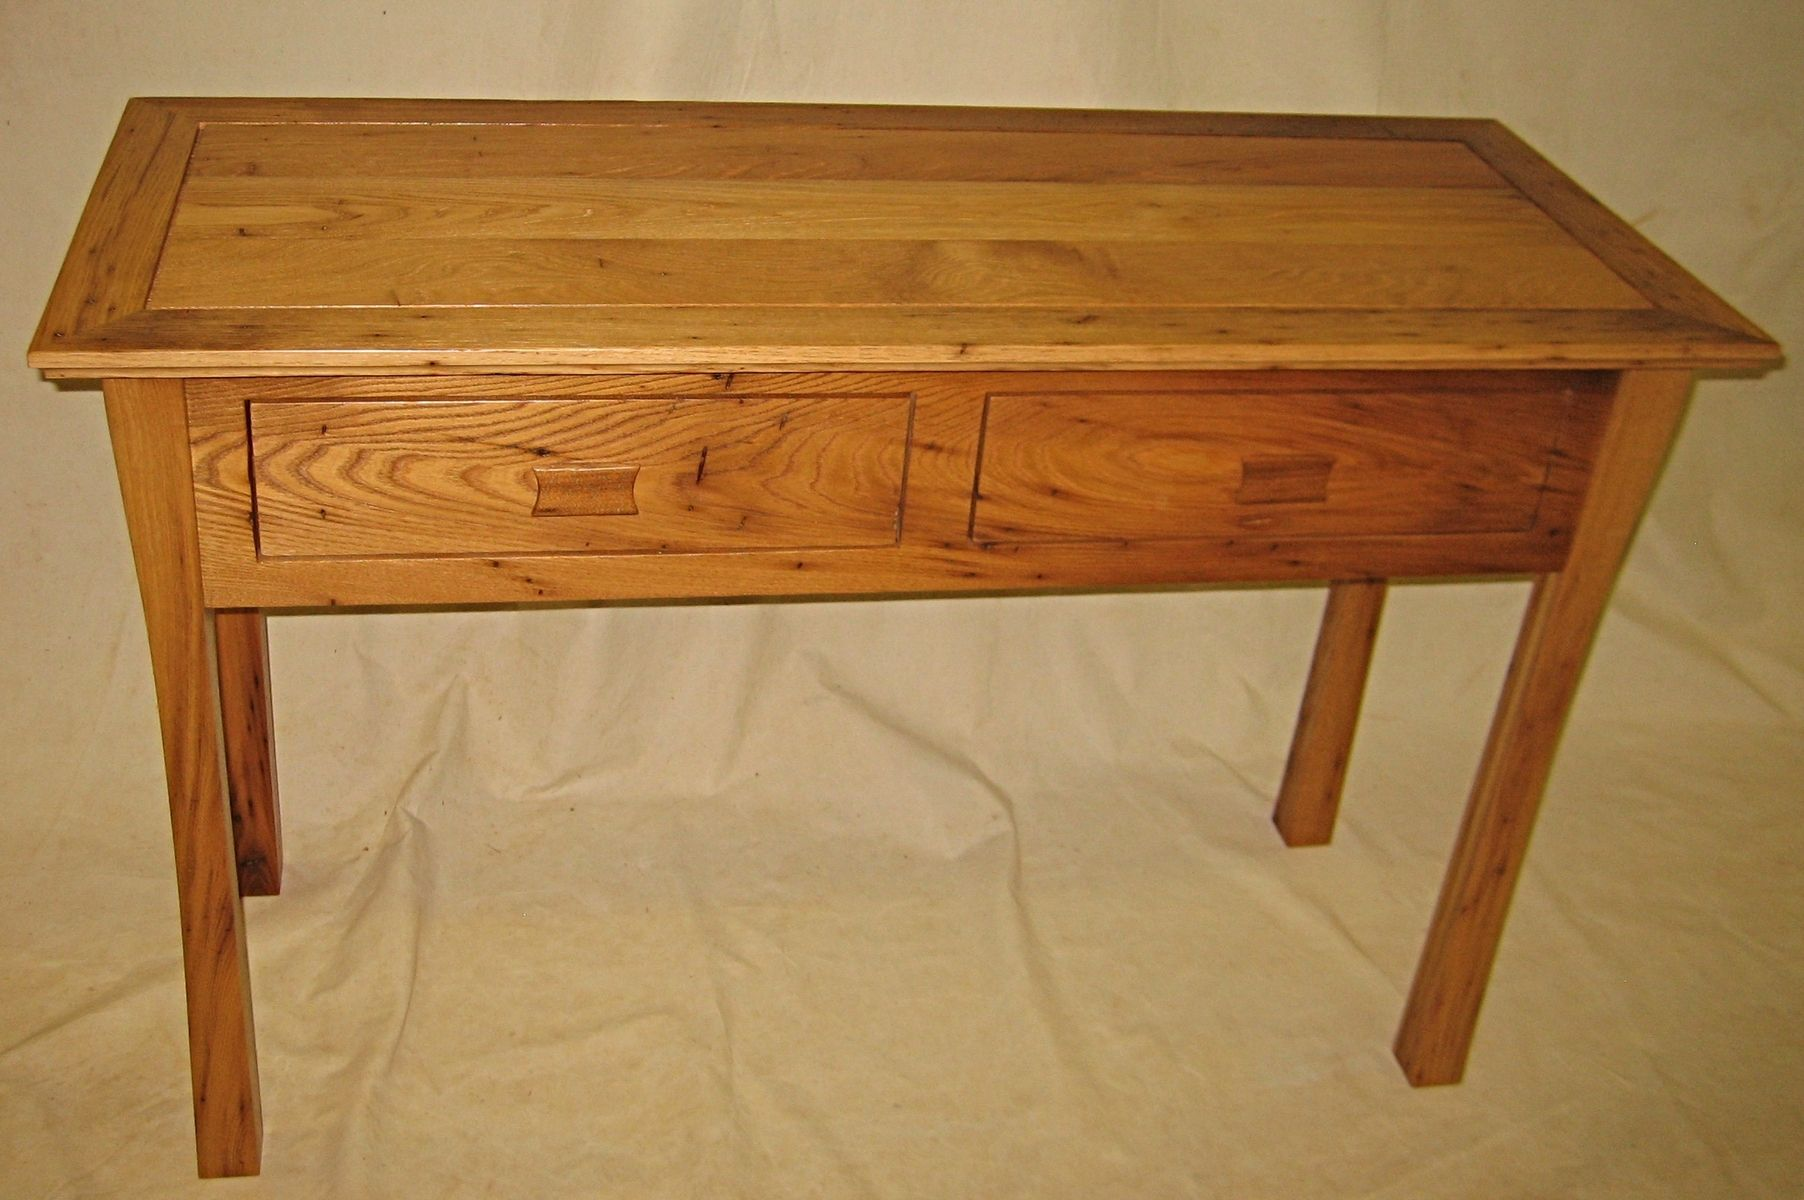 Custom wormy chestnut console table by miters touch woodworking custom made wormy chestnut console table geotapseo Choice Image